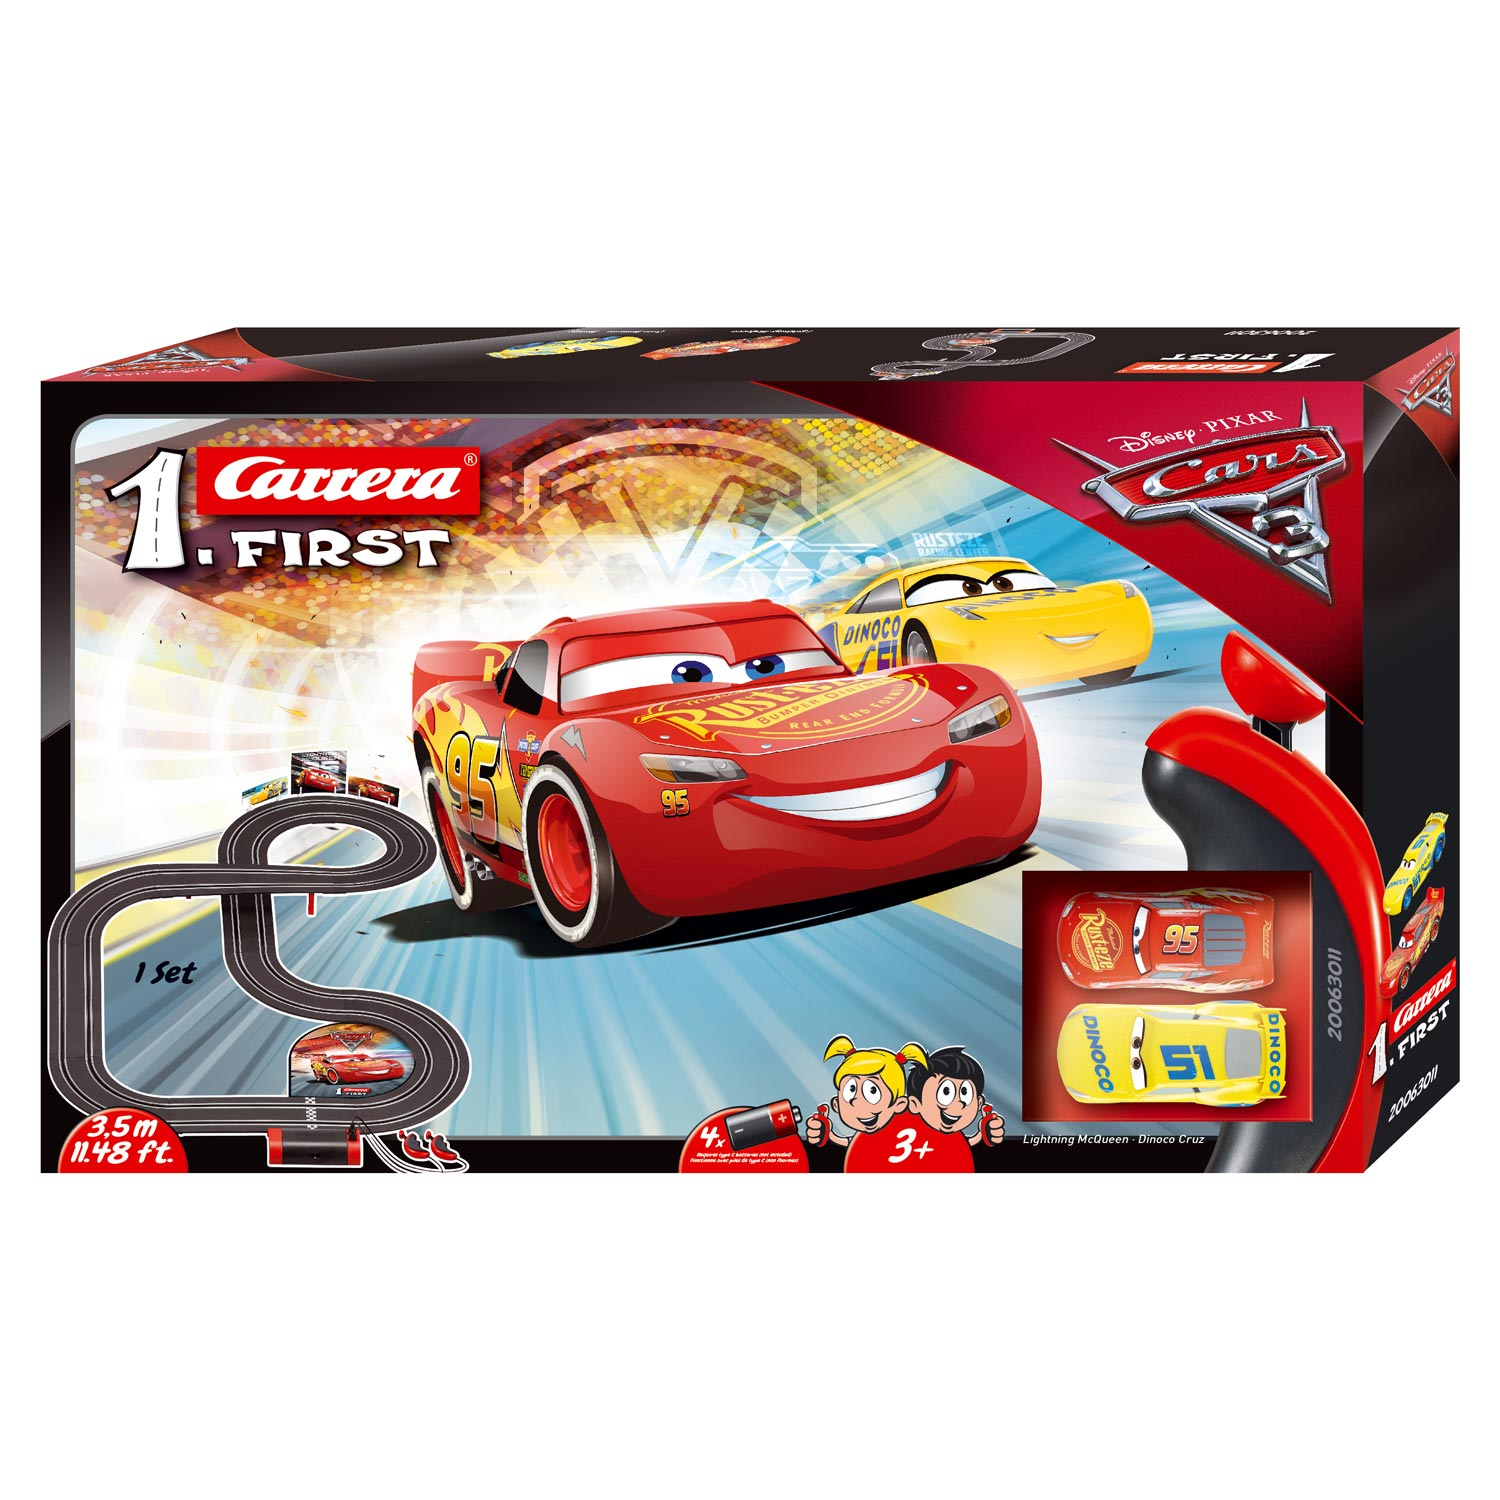 Carrera First Racebaan - Cars 3